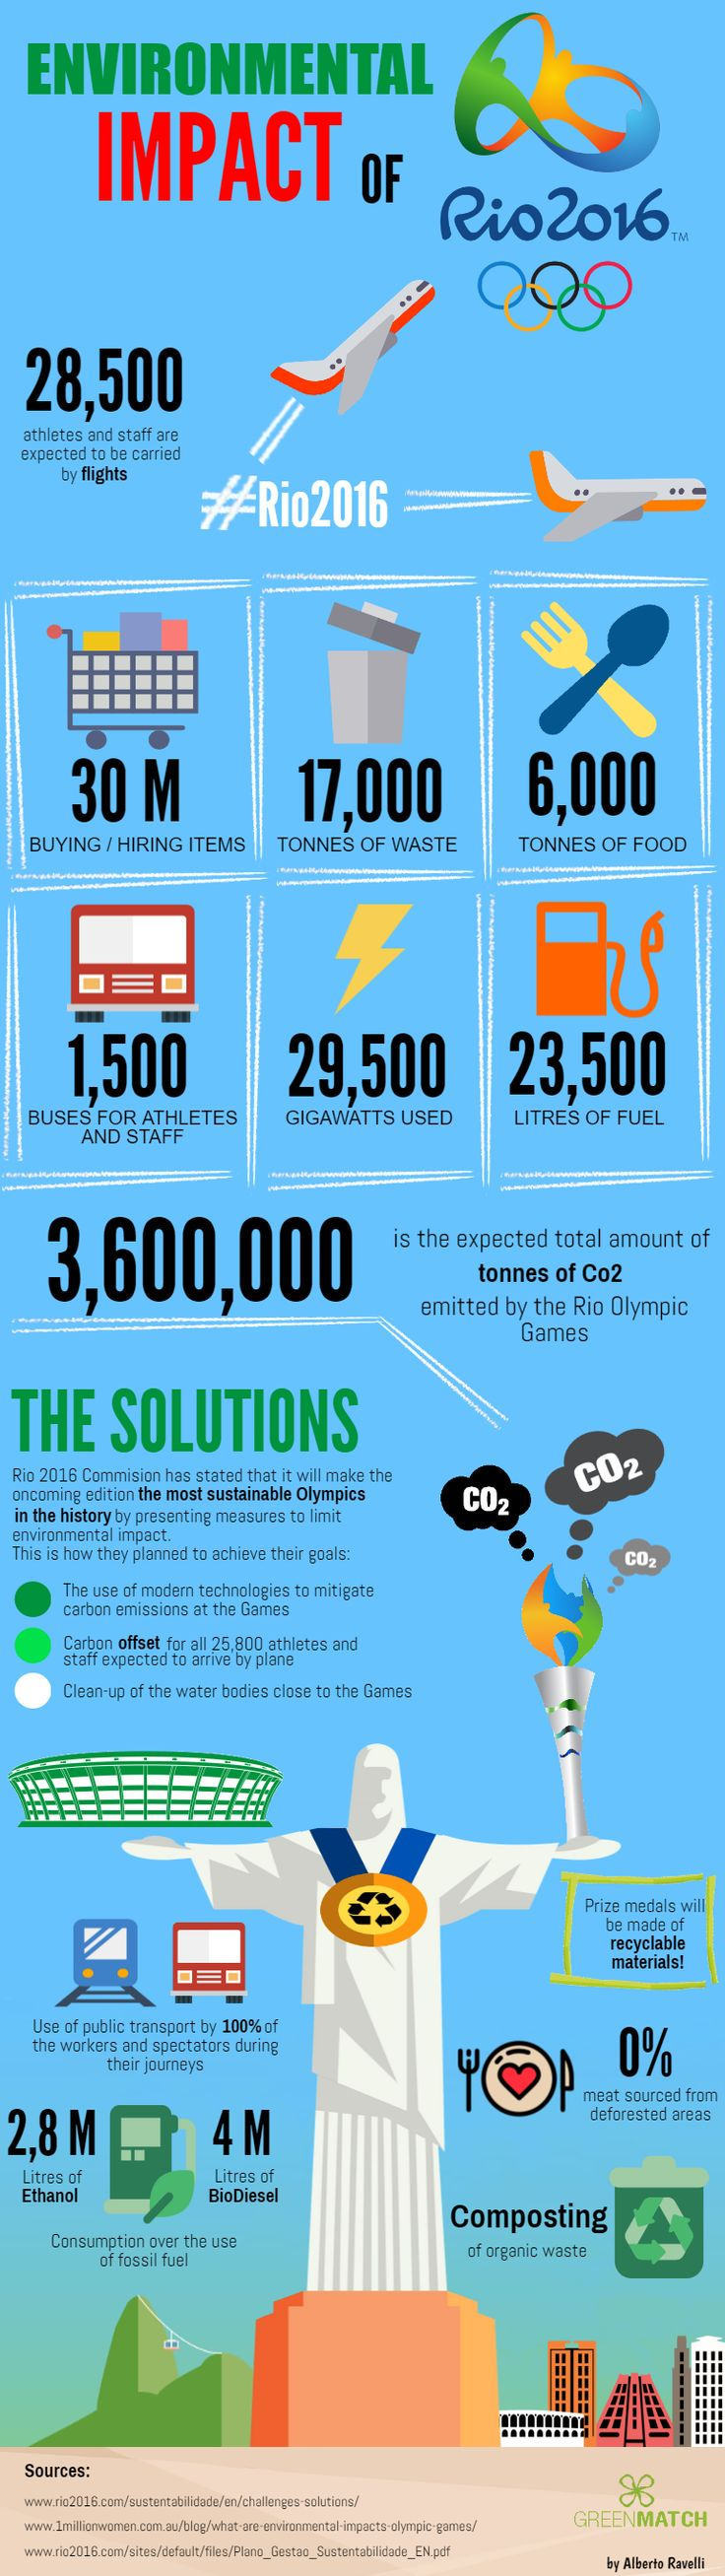 The Environmental Impact of the Olympic Games 2016